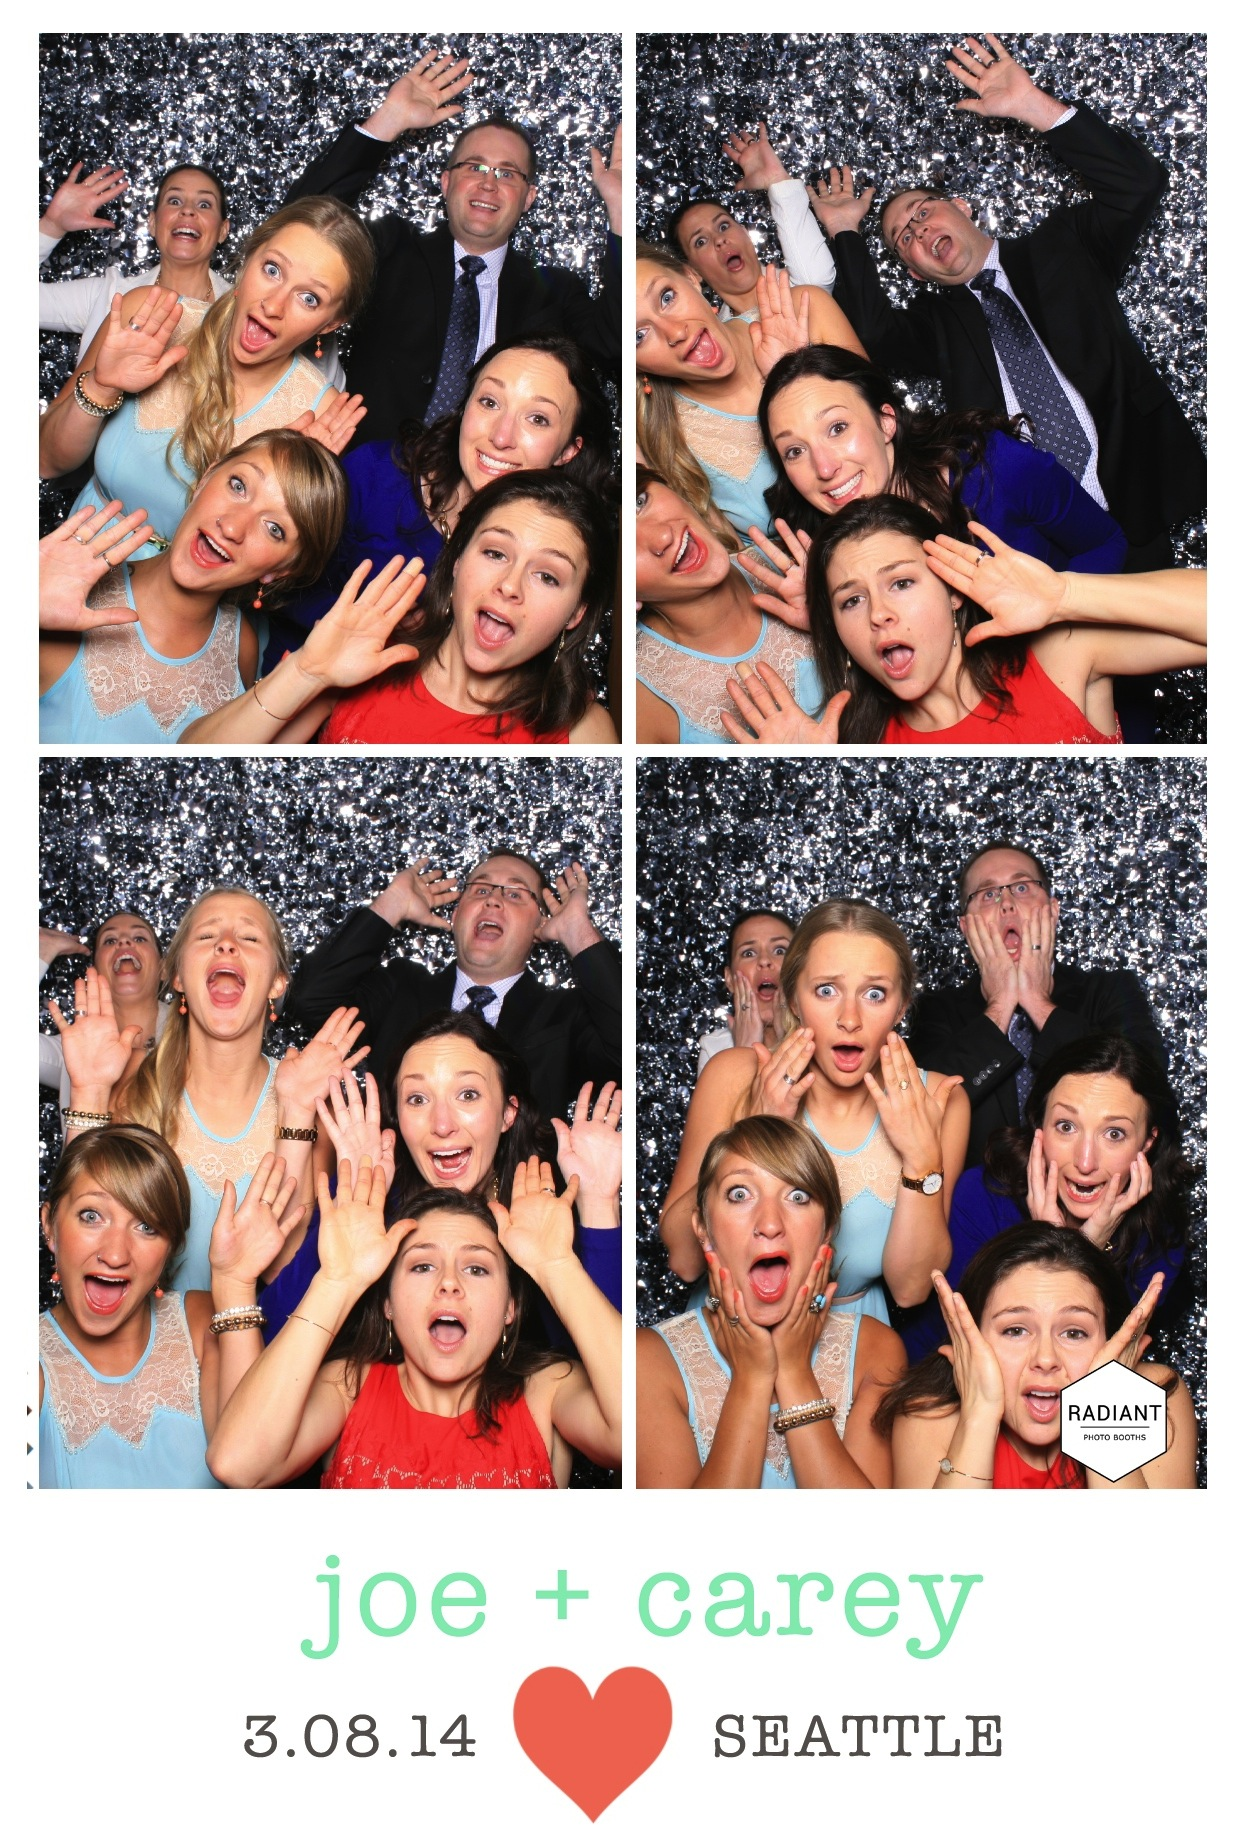 rollercoaster photo booth